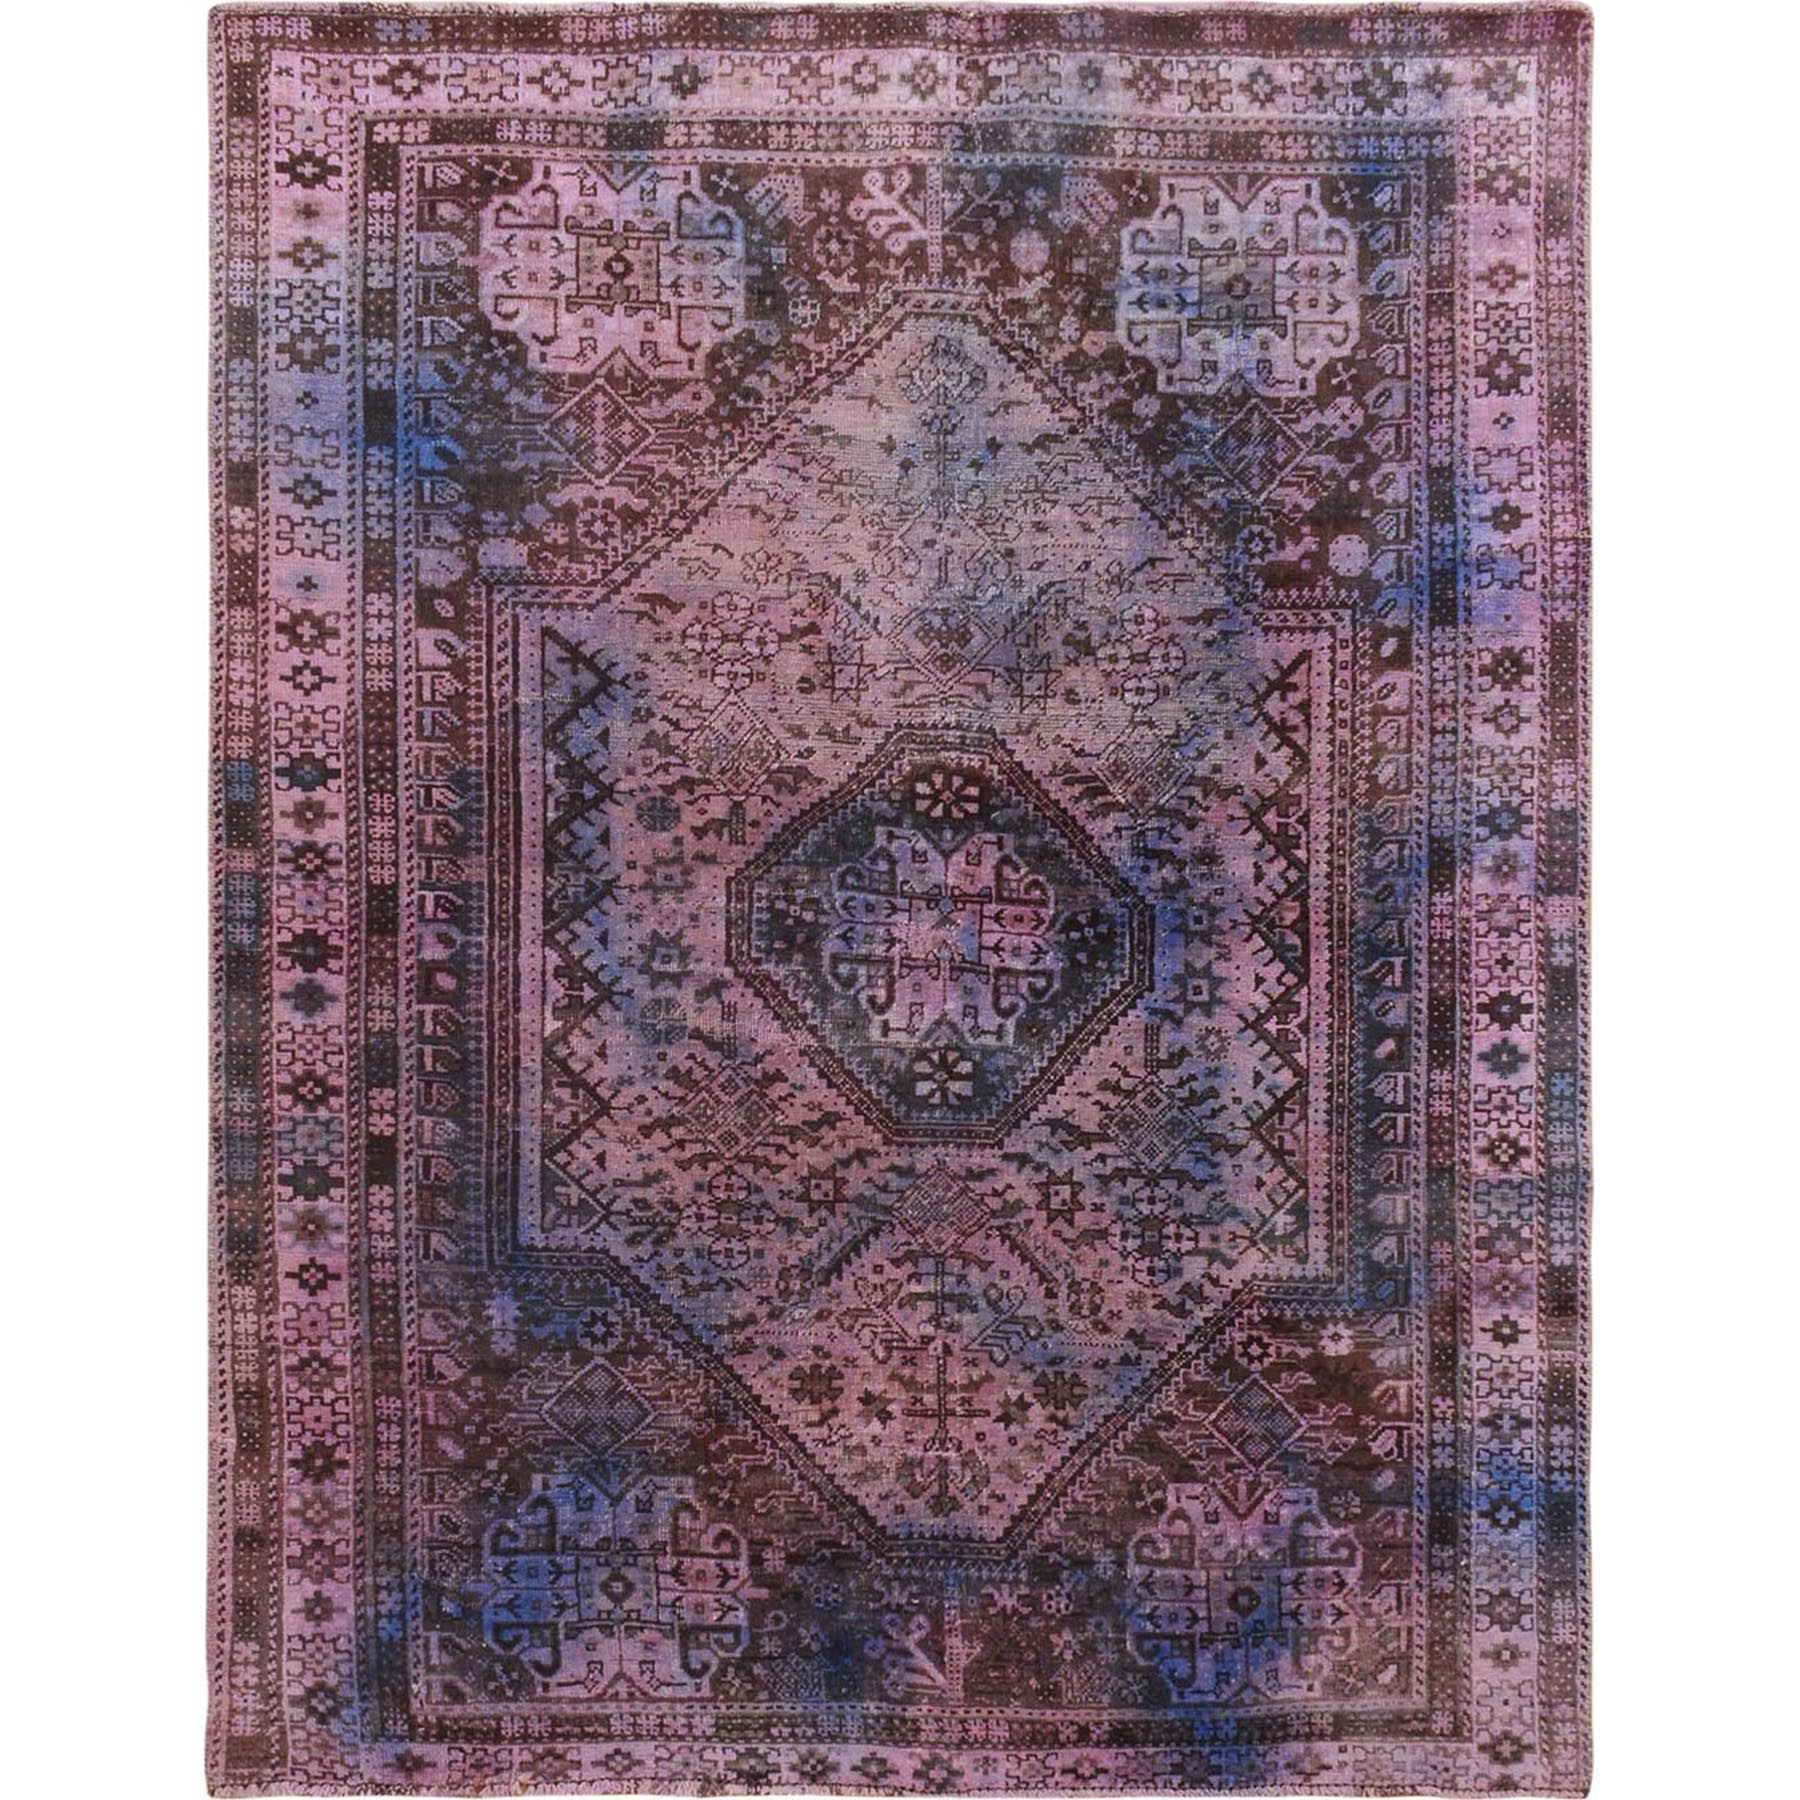 "5'x6'3"" lavender Overdyed And Vintage Worn Down Persian Shiraz Clean Pure Wool Oriental Rug"